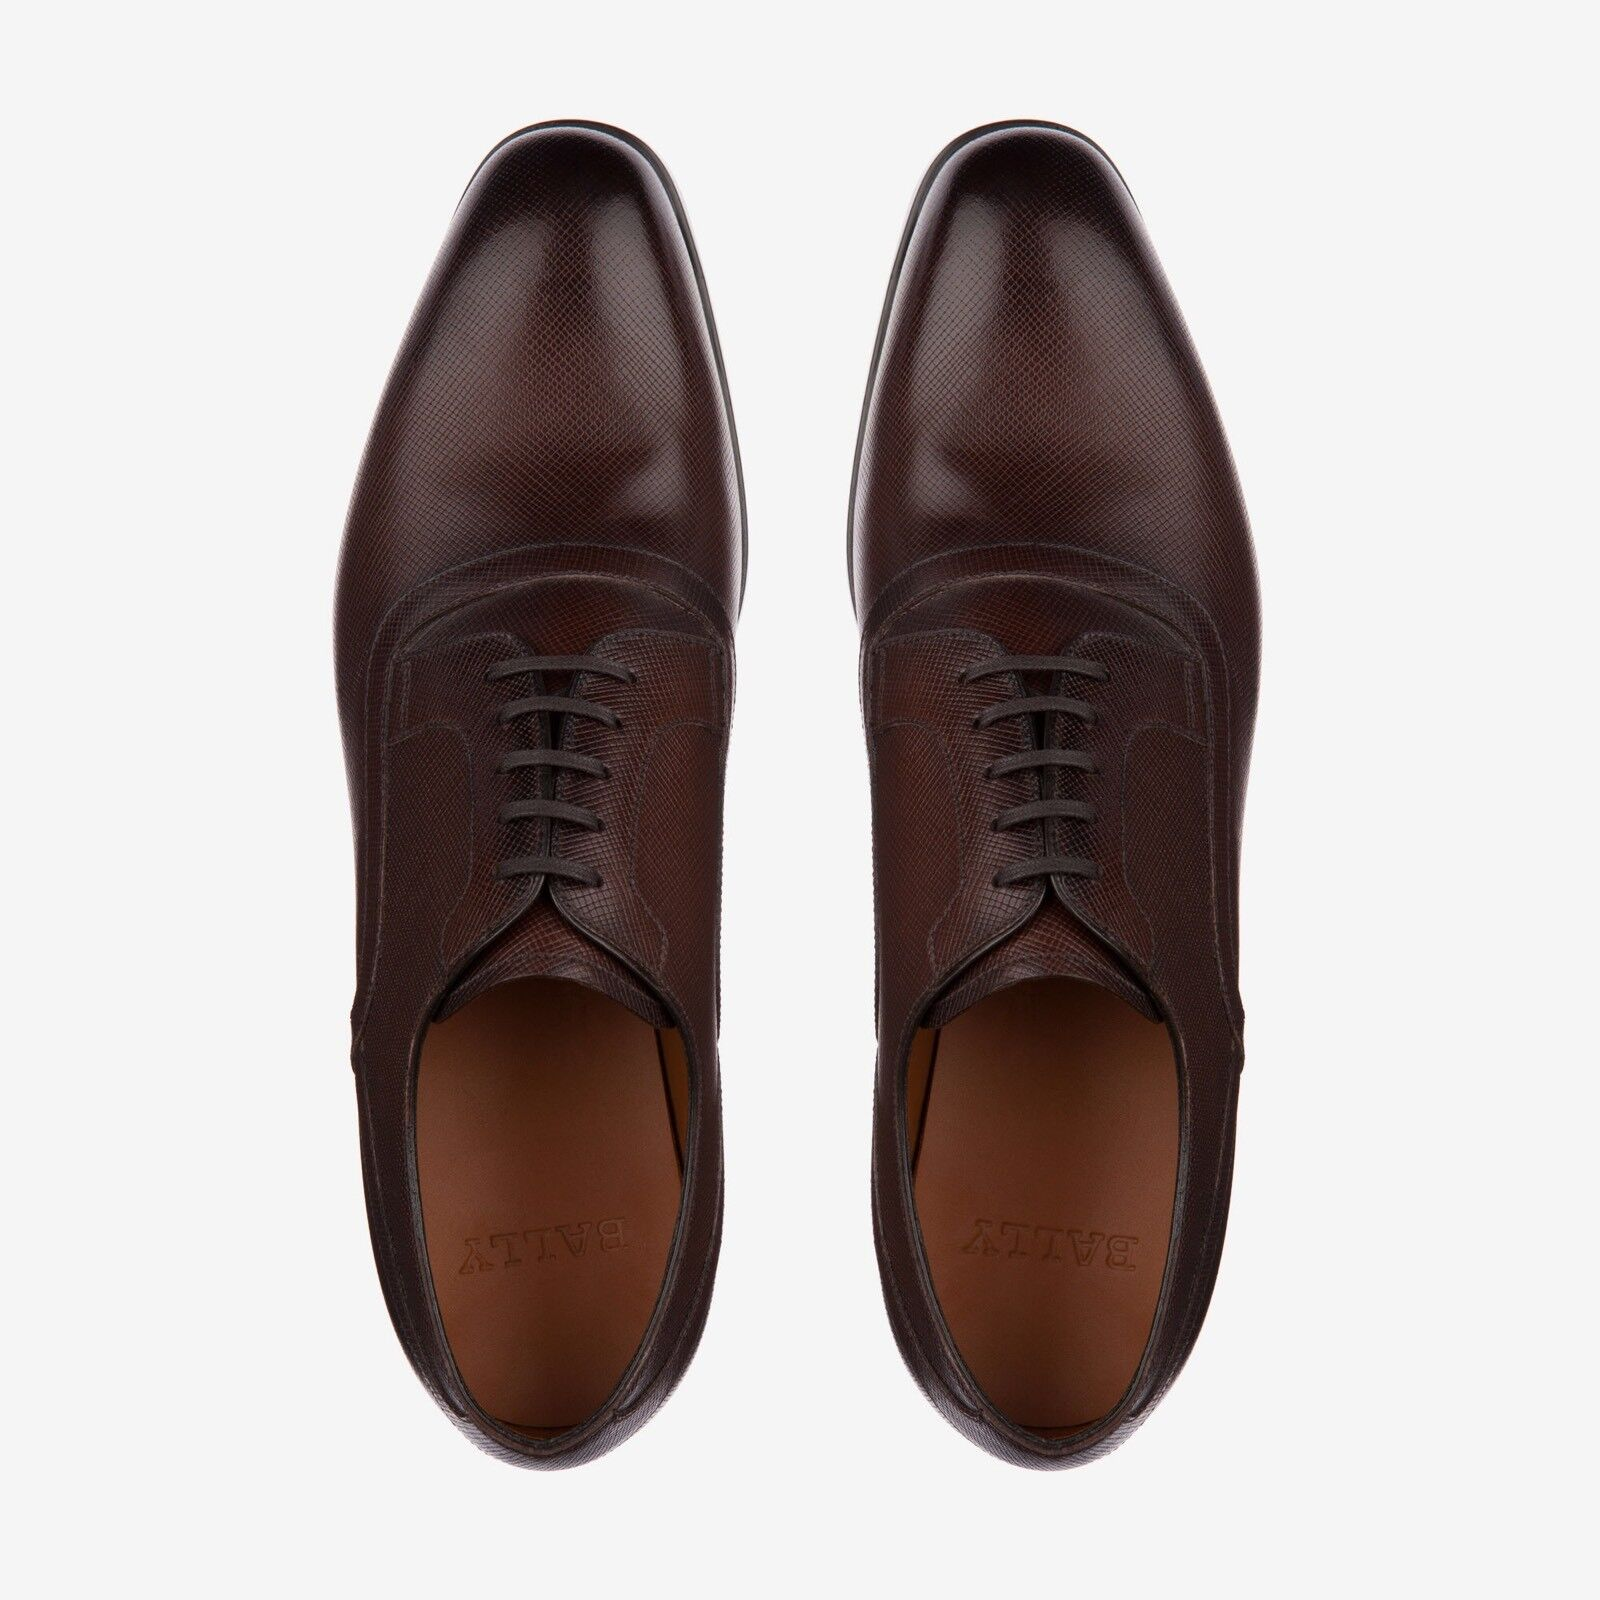 New In Box Bally 'Lauron' Brown Saffiano Saffiano Saffiano Pelle Derby Lace Ups 9EU/10US  595.00 00db16